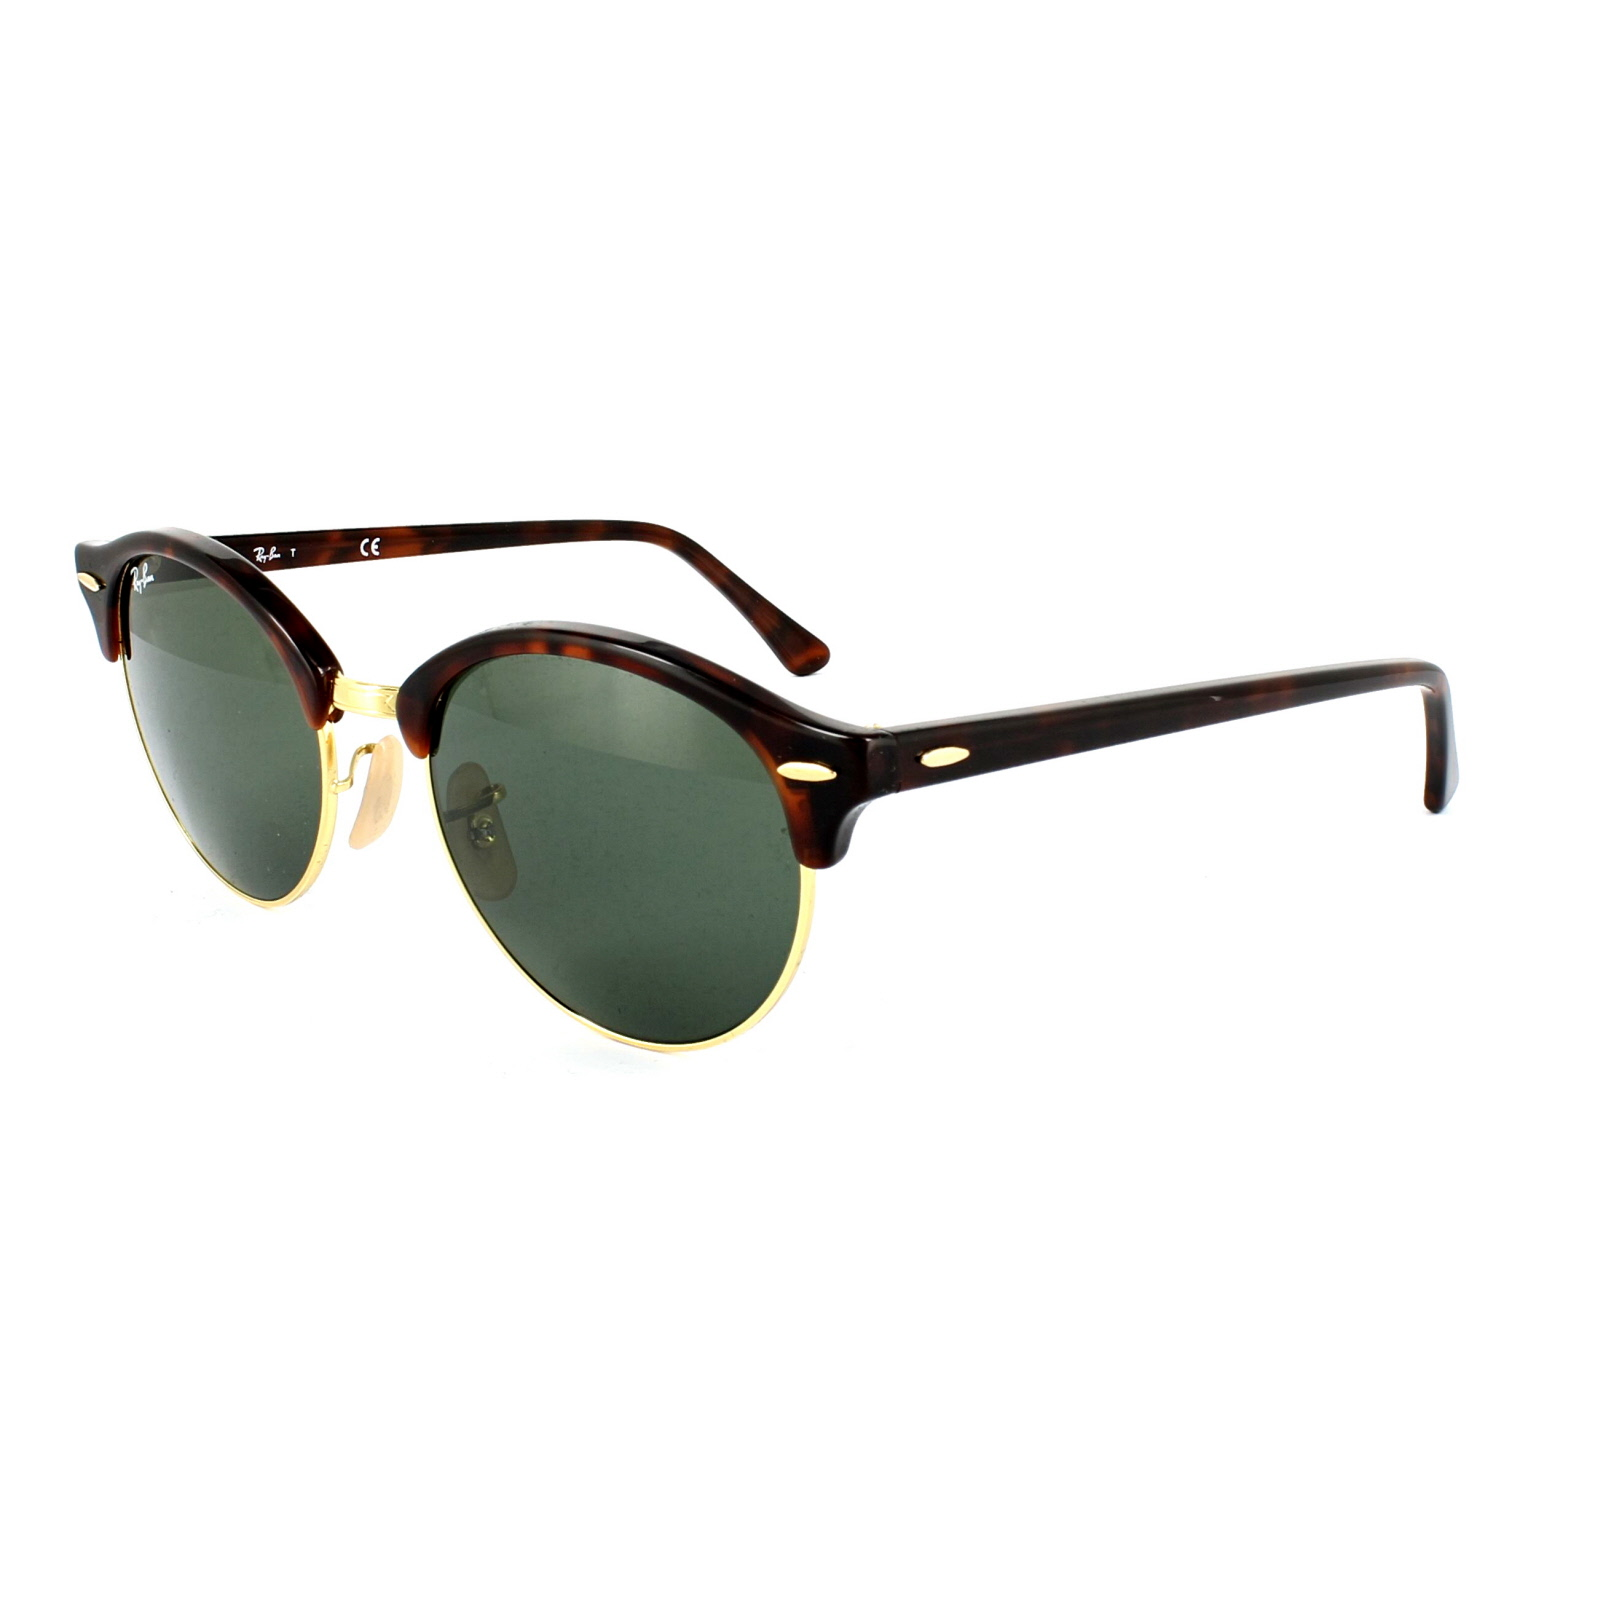 5a9d3b199fcb2 Sentinel Ray-Ban Sunglasses Clubround 4246 990 Red Havana   Gold Green